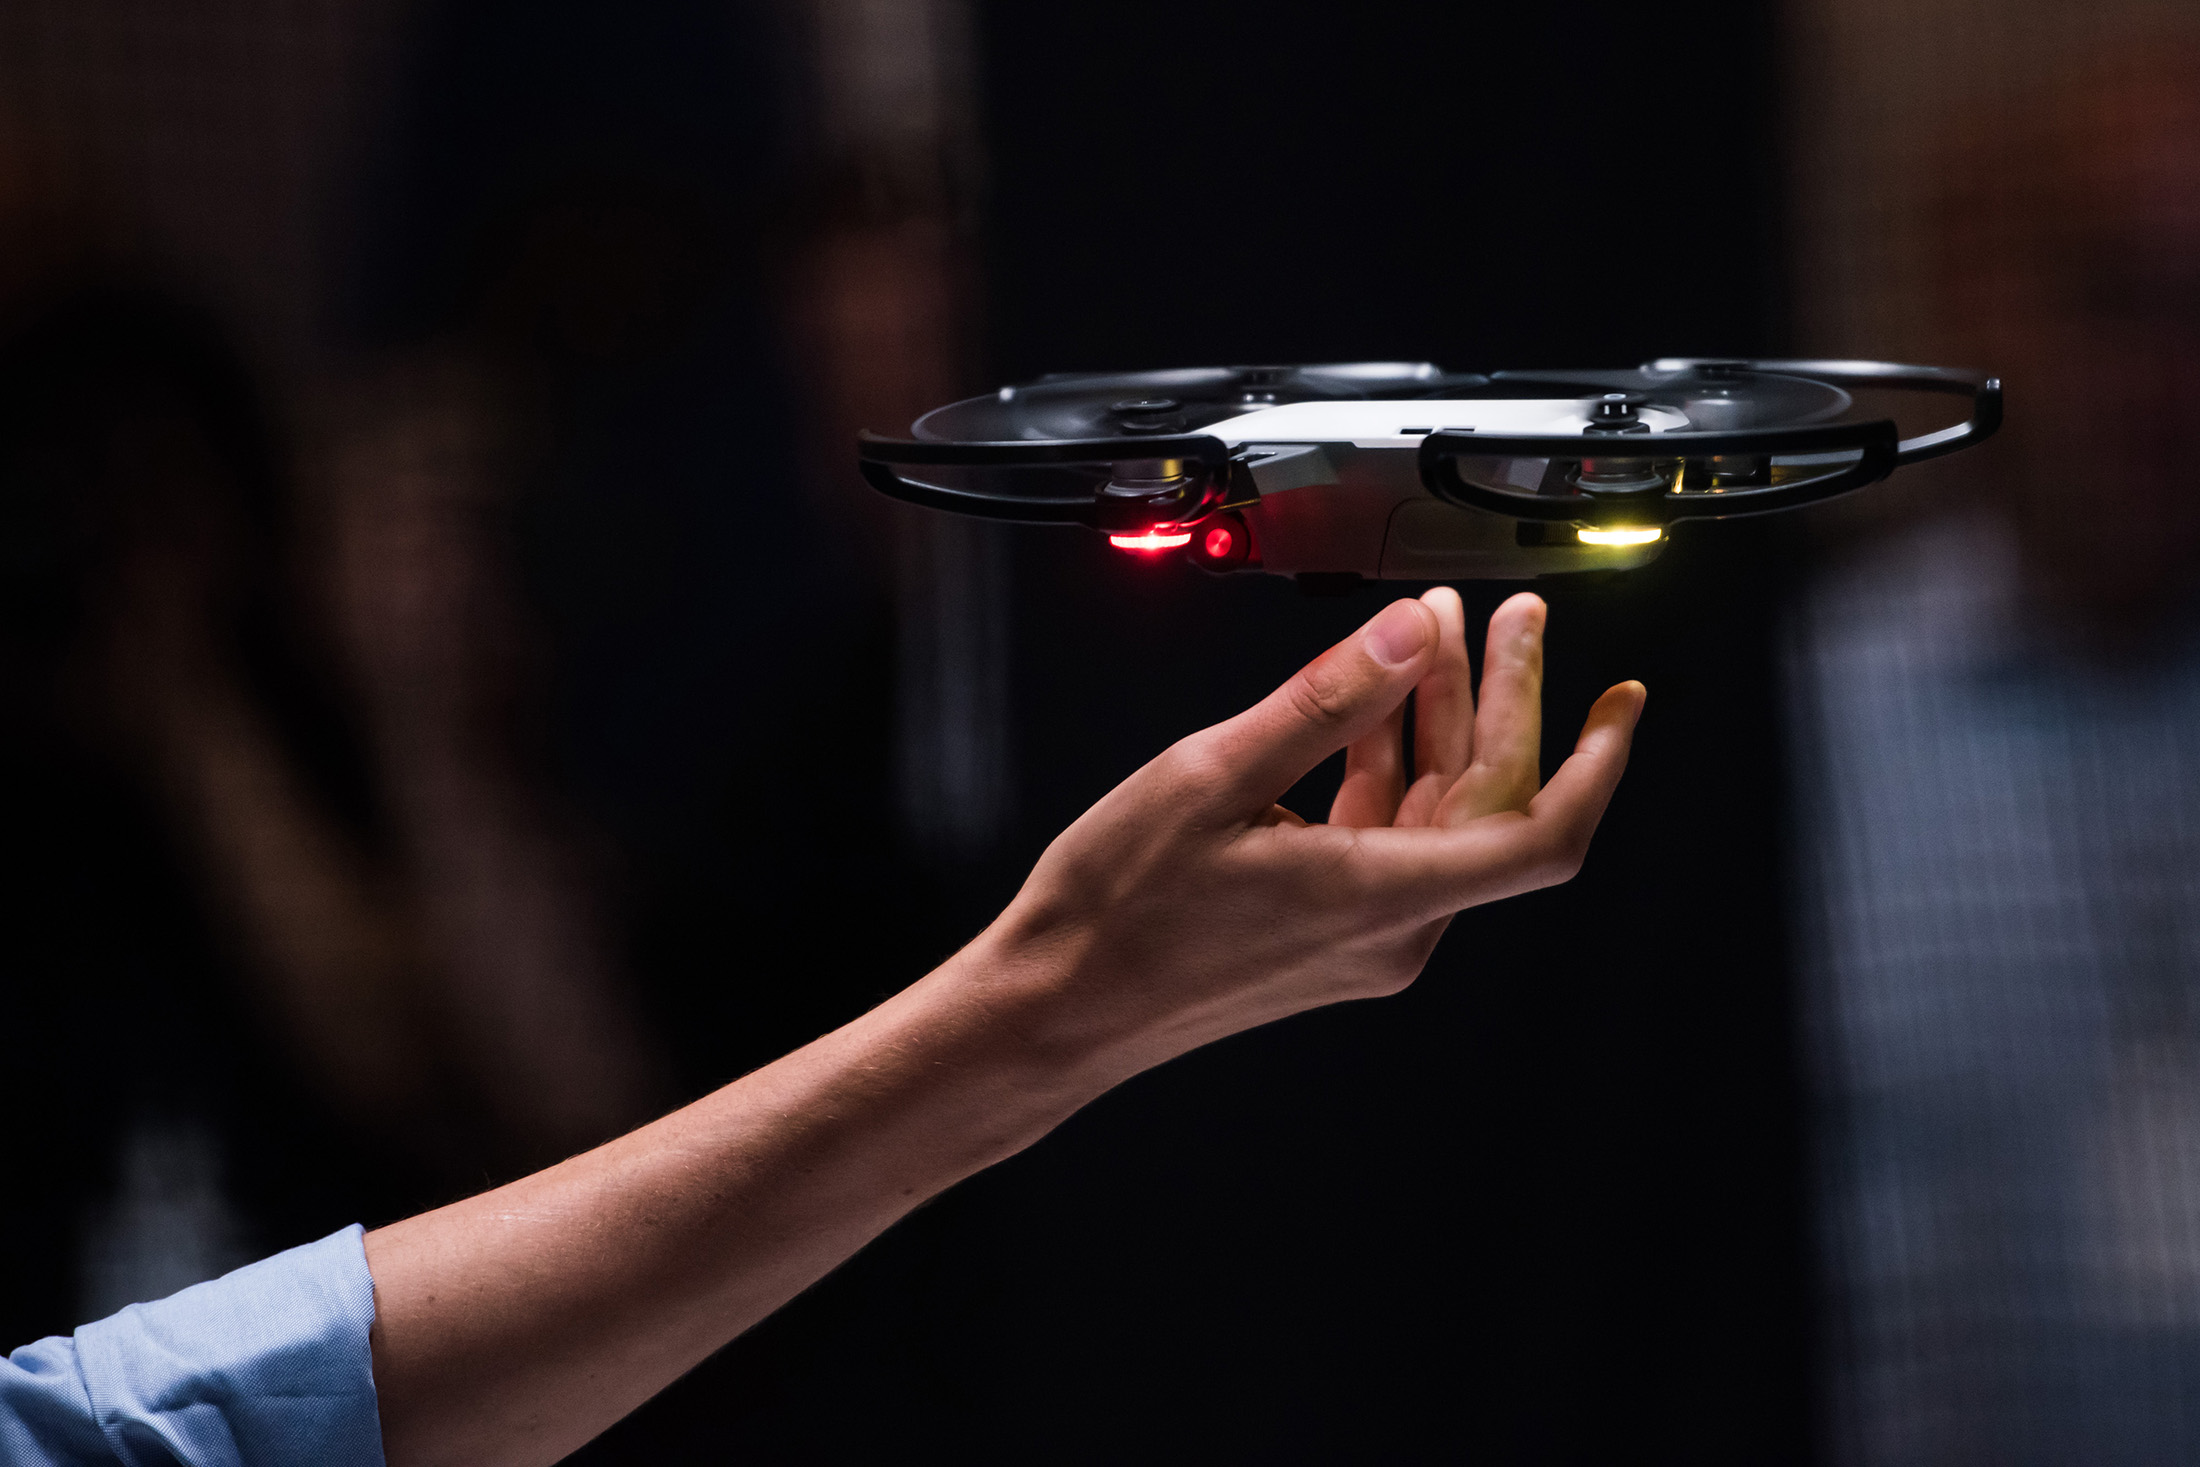 Michael Perry, Director of Strategic Partnerships for DJI Drones, launches the DJI Spark gesture-controlled selfie drone at a DJI Drone event in New York, U.S., on Wednesday, May 24, 2017. Mark Kauzlarich/Bloomberg